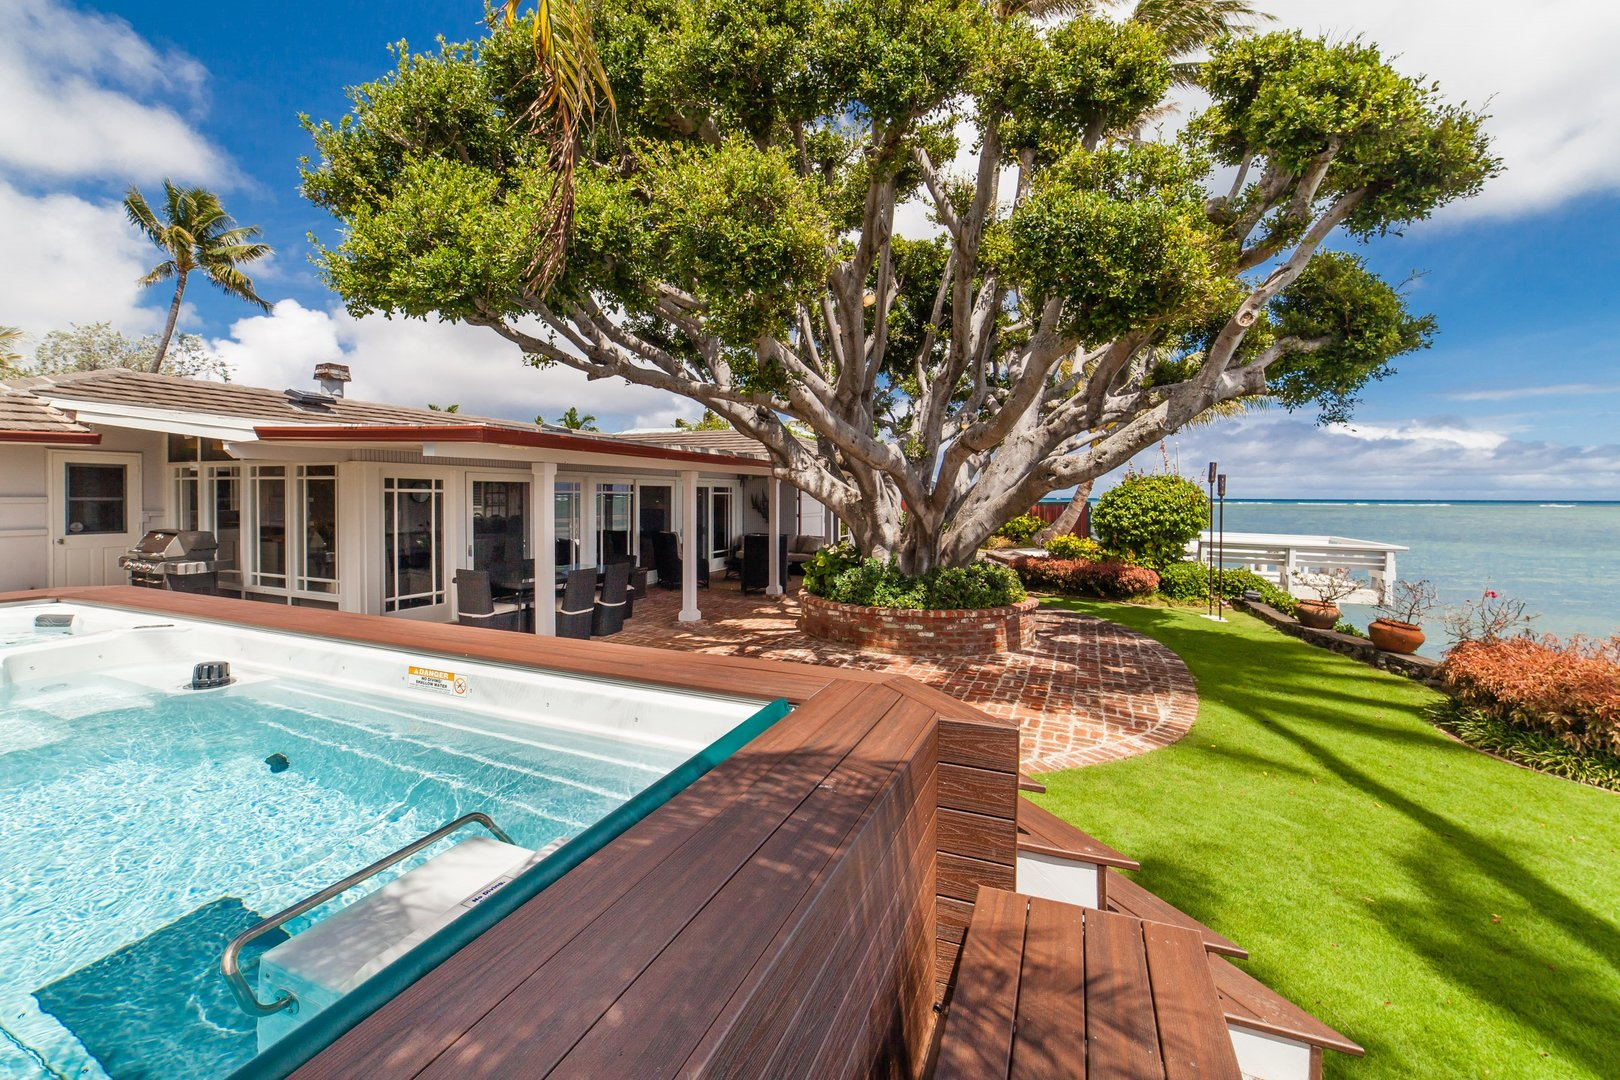 exterior of vacation rental with pool and ocean view